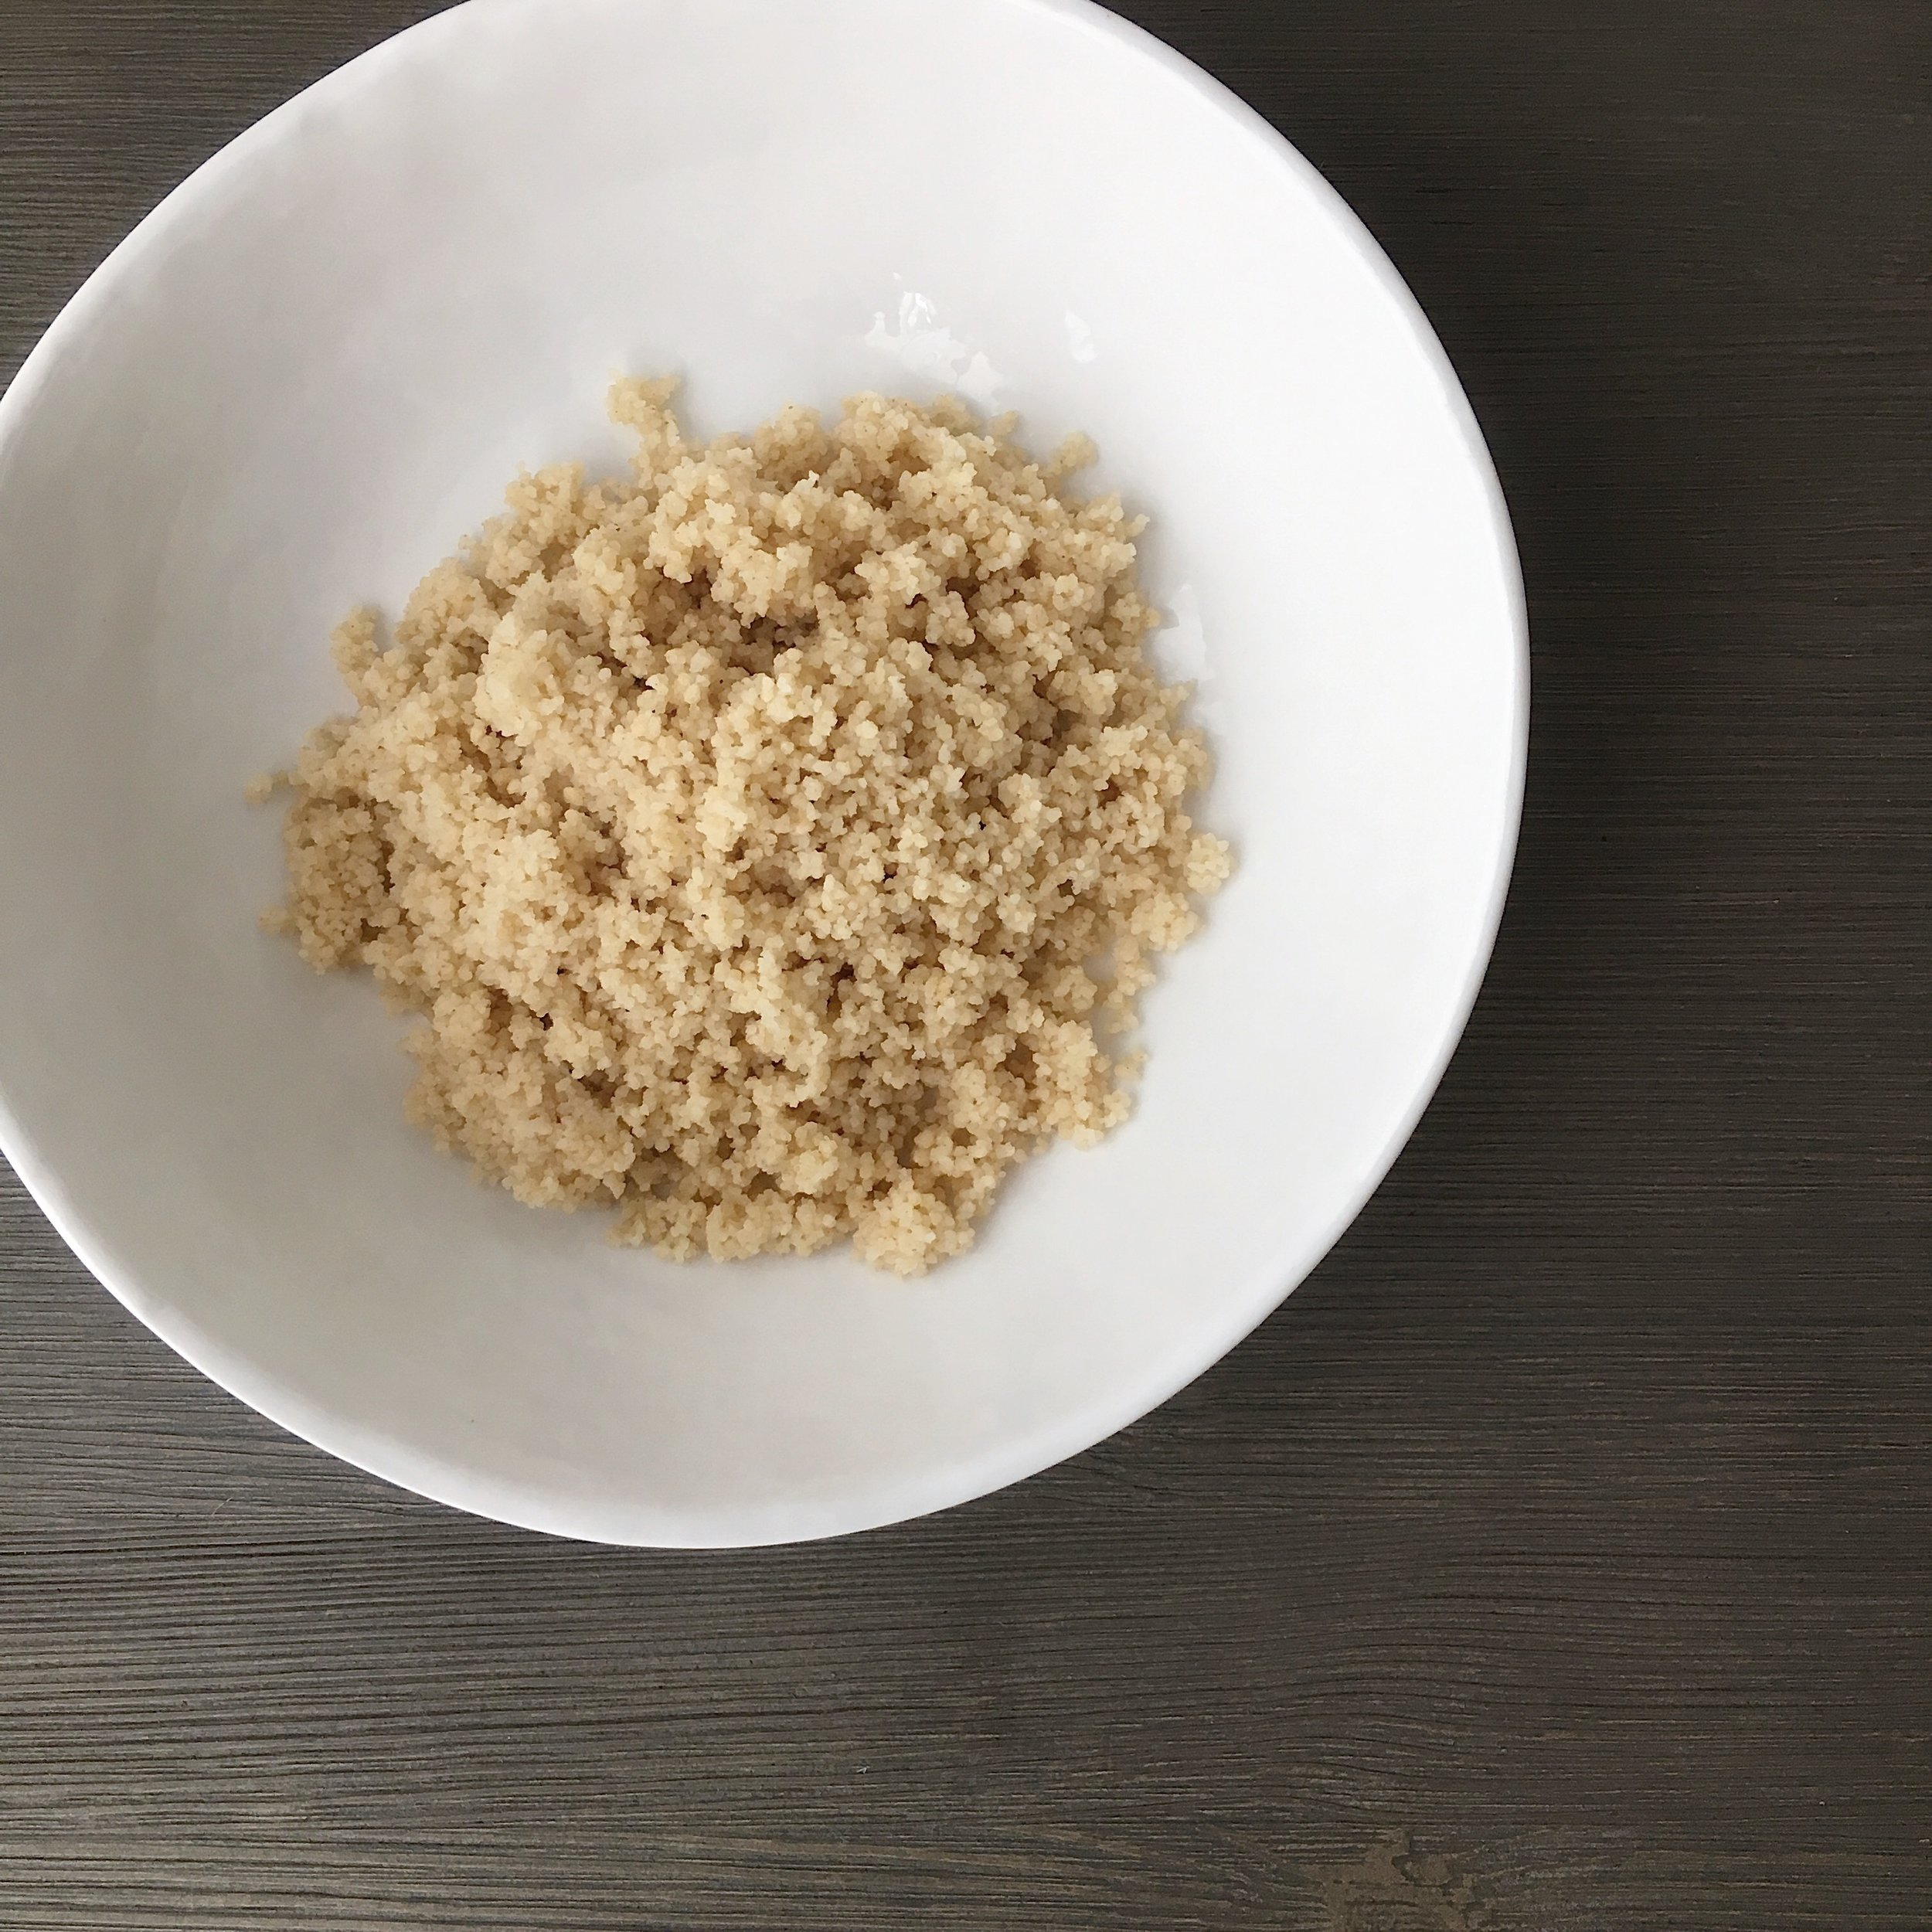 1. Select your base - I used whole wheat couscous. Steel-cut oatmeal, barley, quinoa or farro work work equally as well.